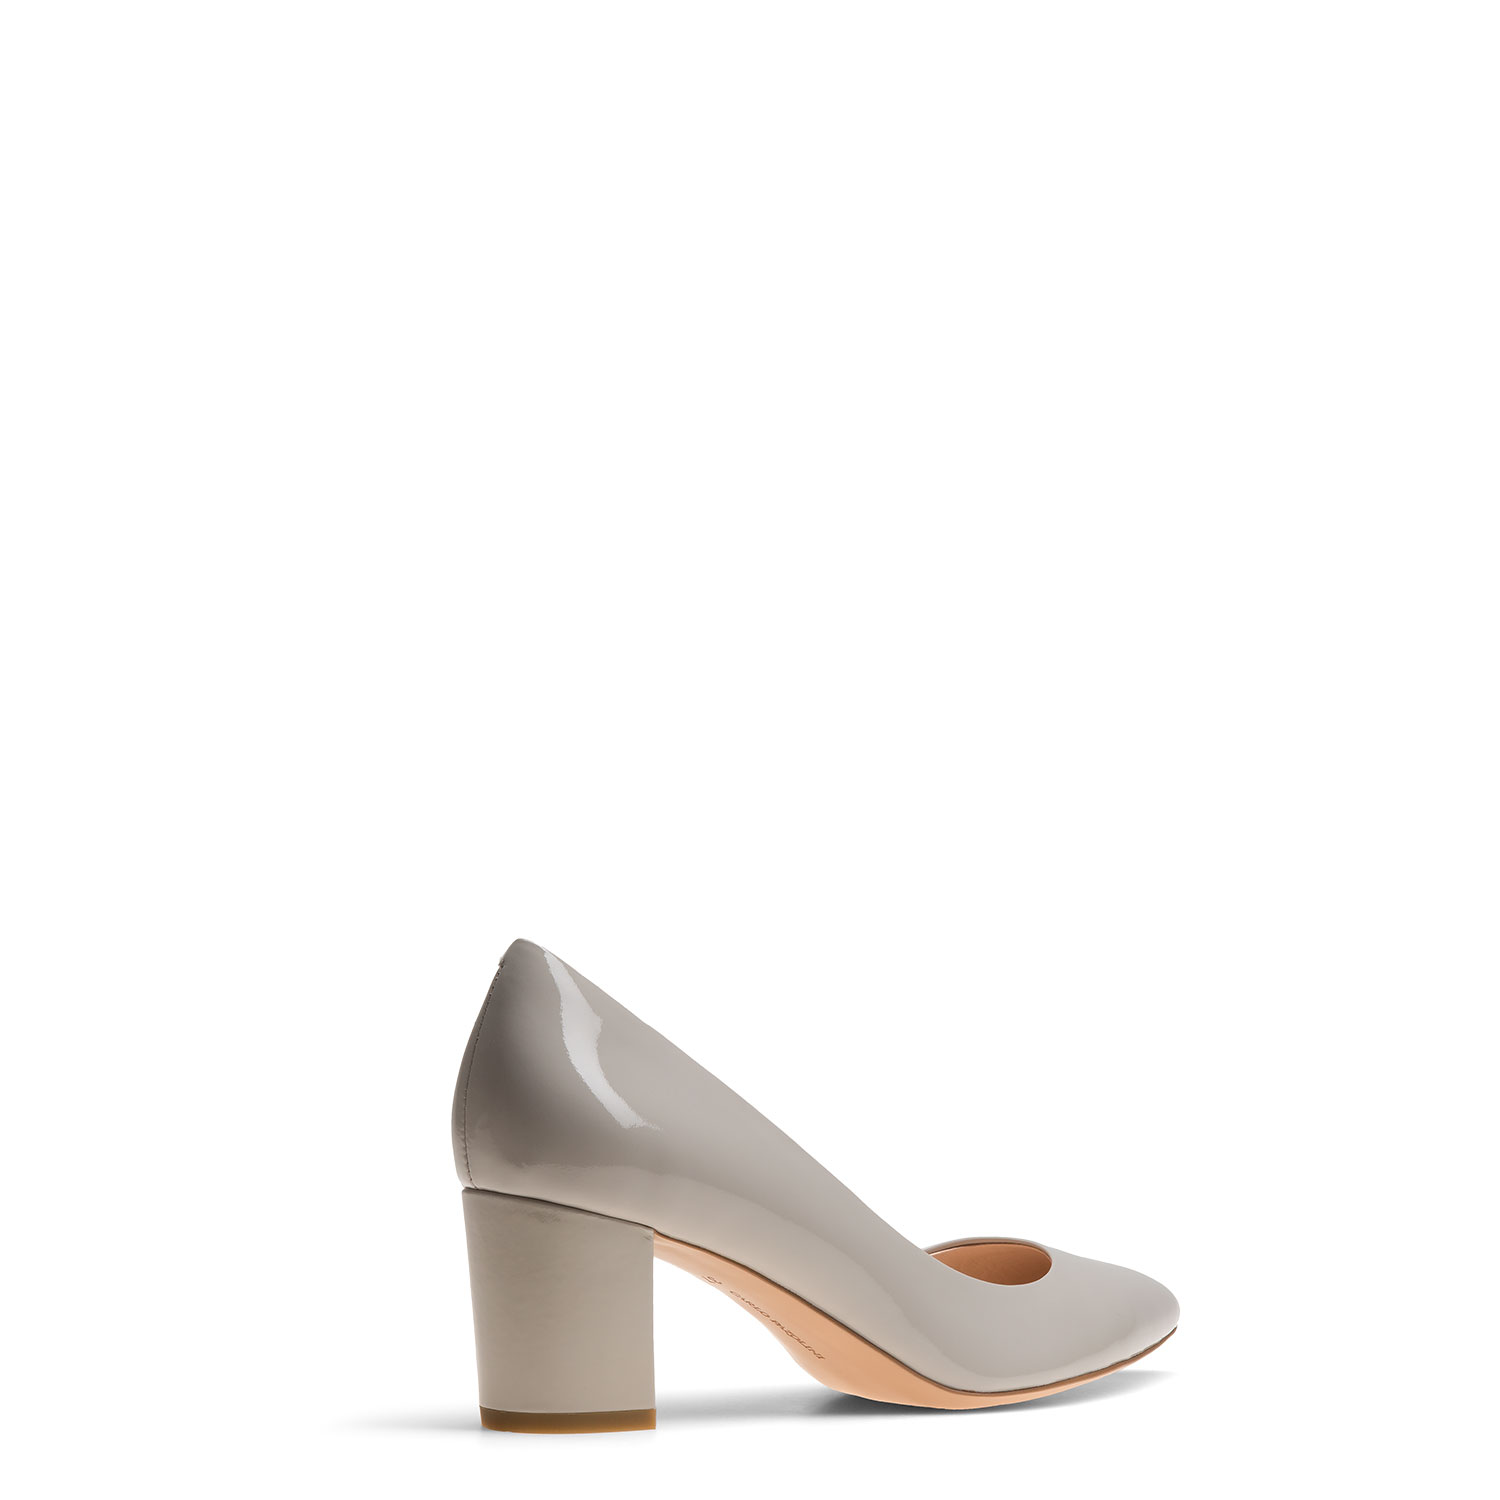 Women's shoes CARLO PAZOLINI FL-GIA11-10